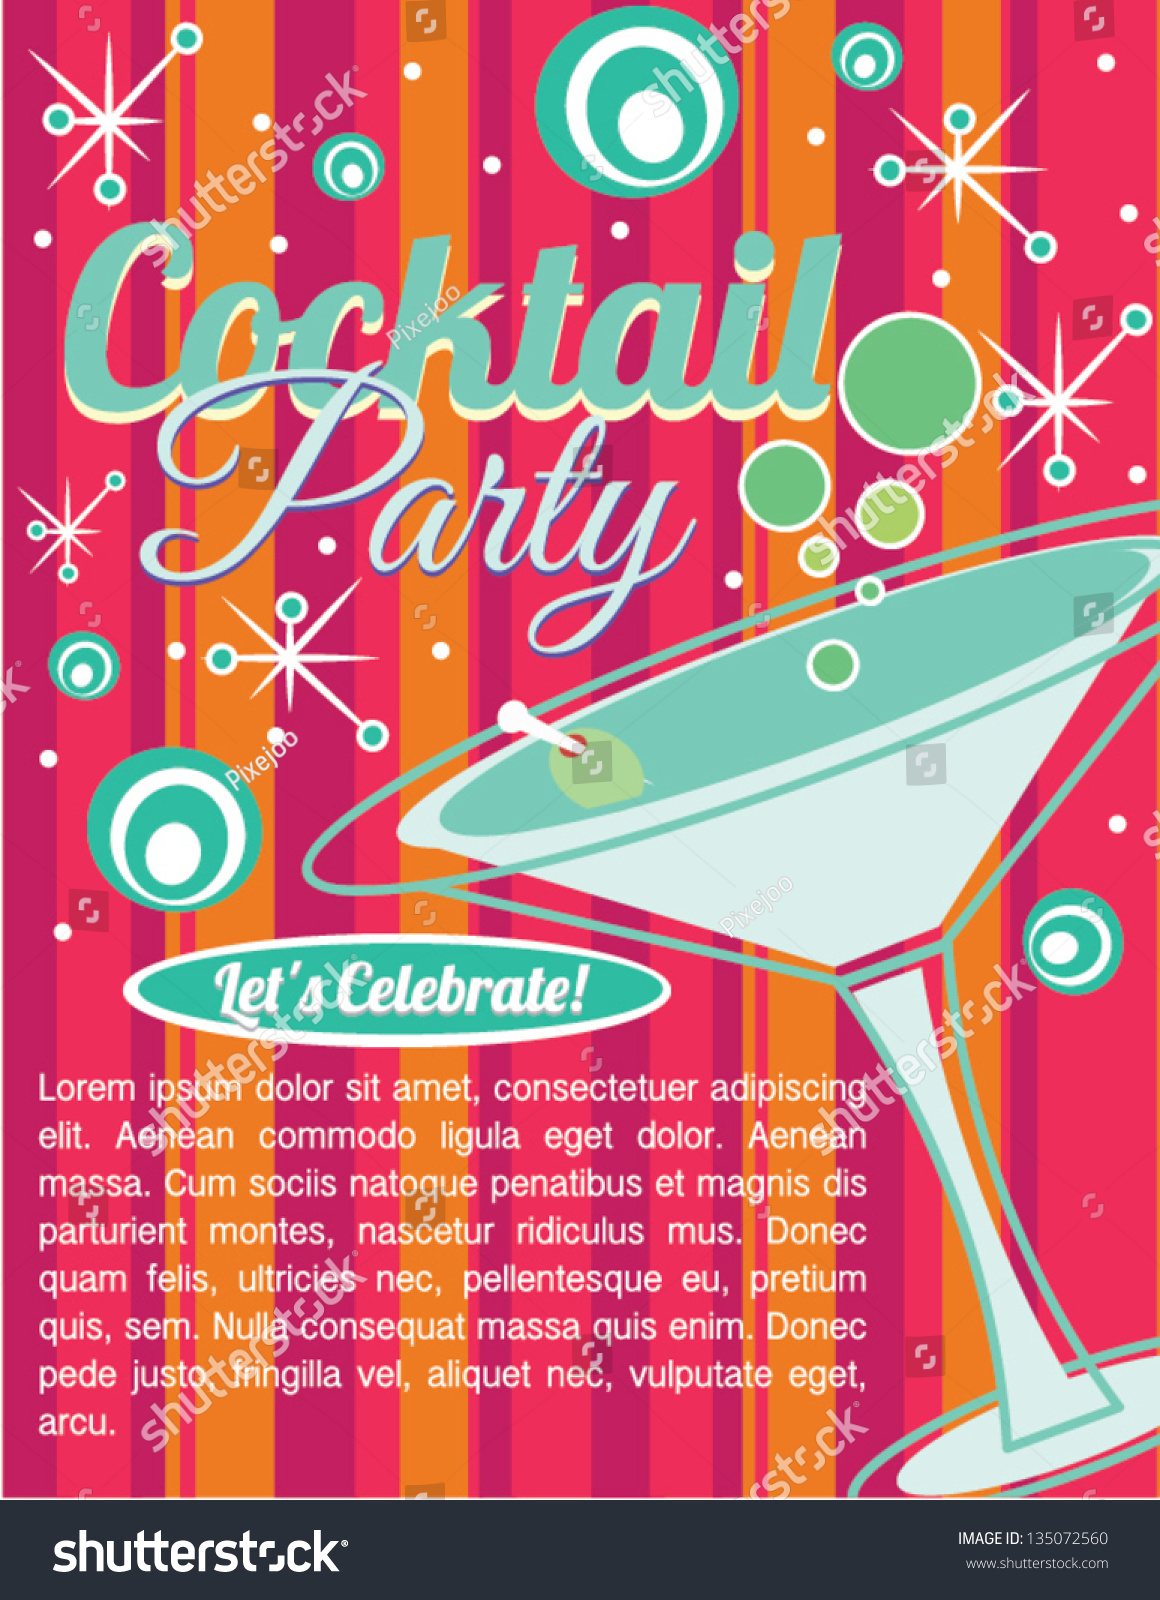 Cocktail Party Invitation Card Vector 135072560 Shutterstock – Cocktail Party Invitation Cards